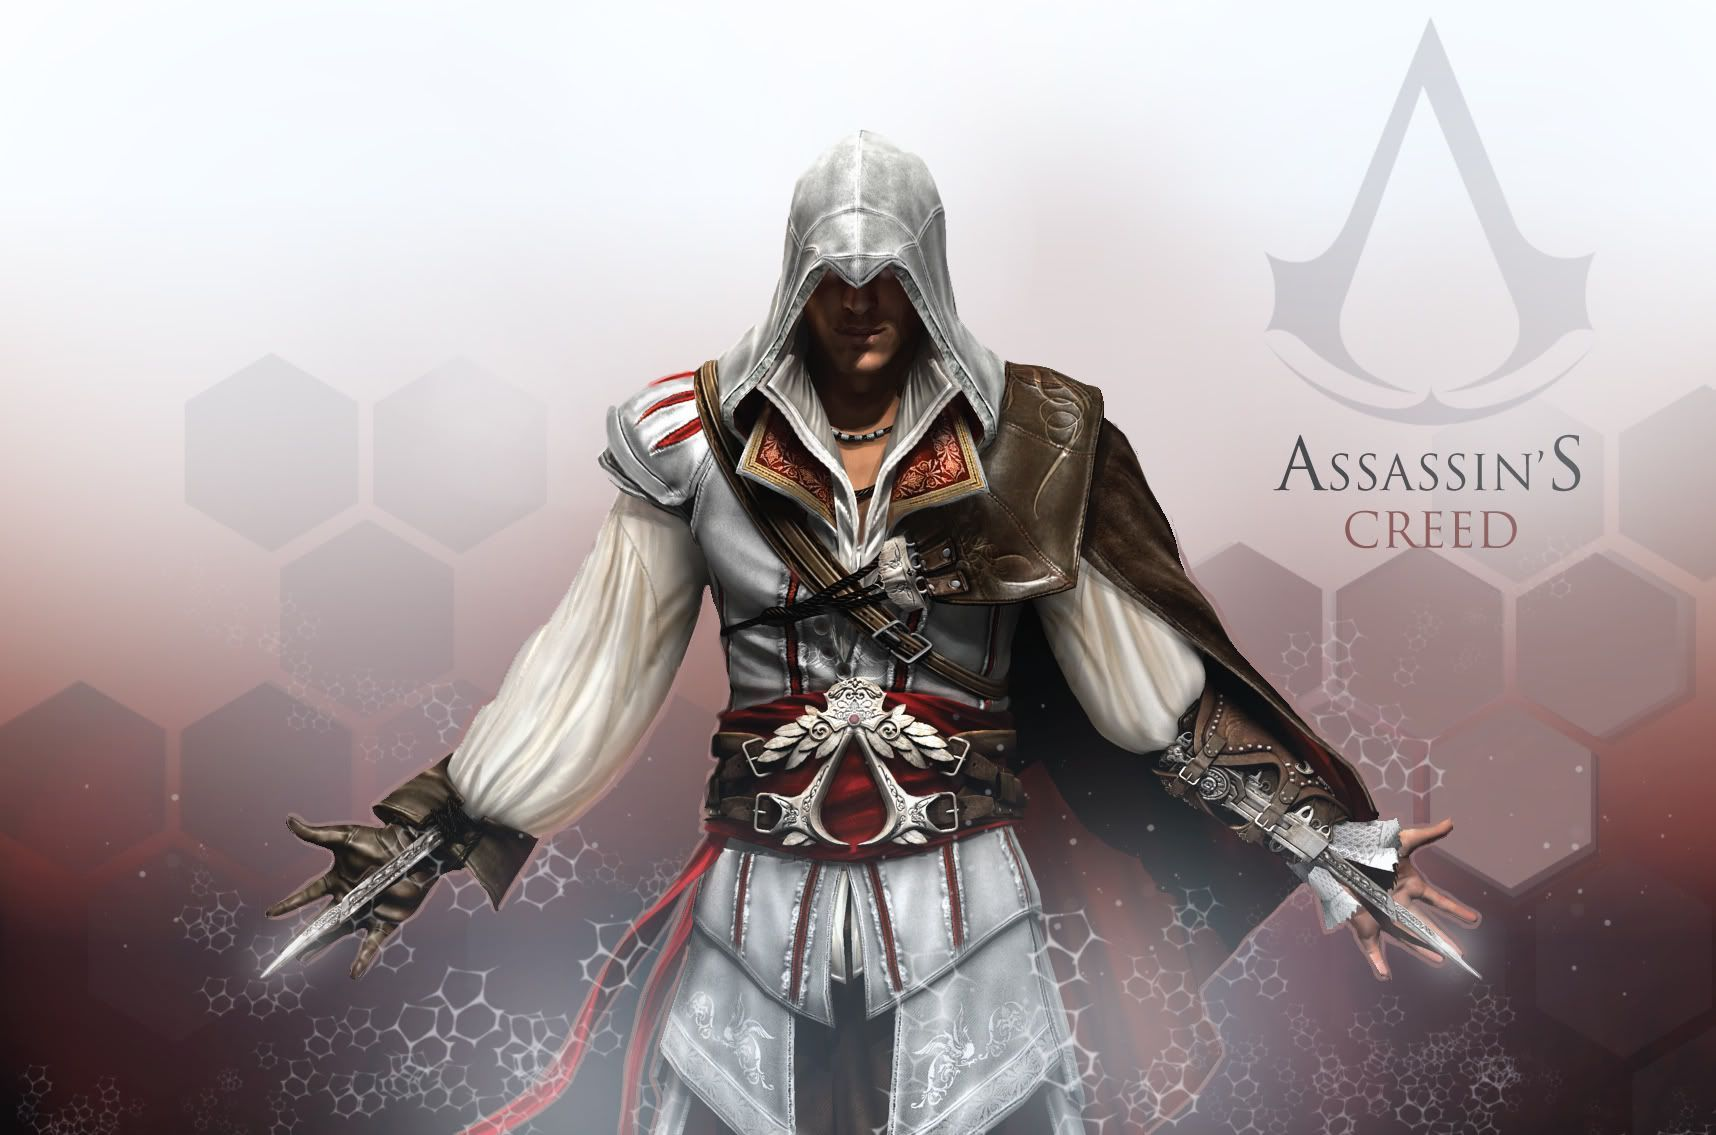 Assassin S Creed 2 Wallpapers Top Free Assassin S Creed 2 Backgrounds Wallpaperaccess